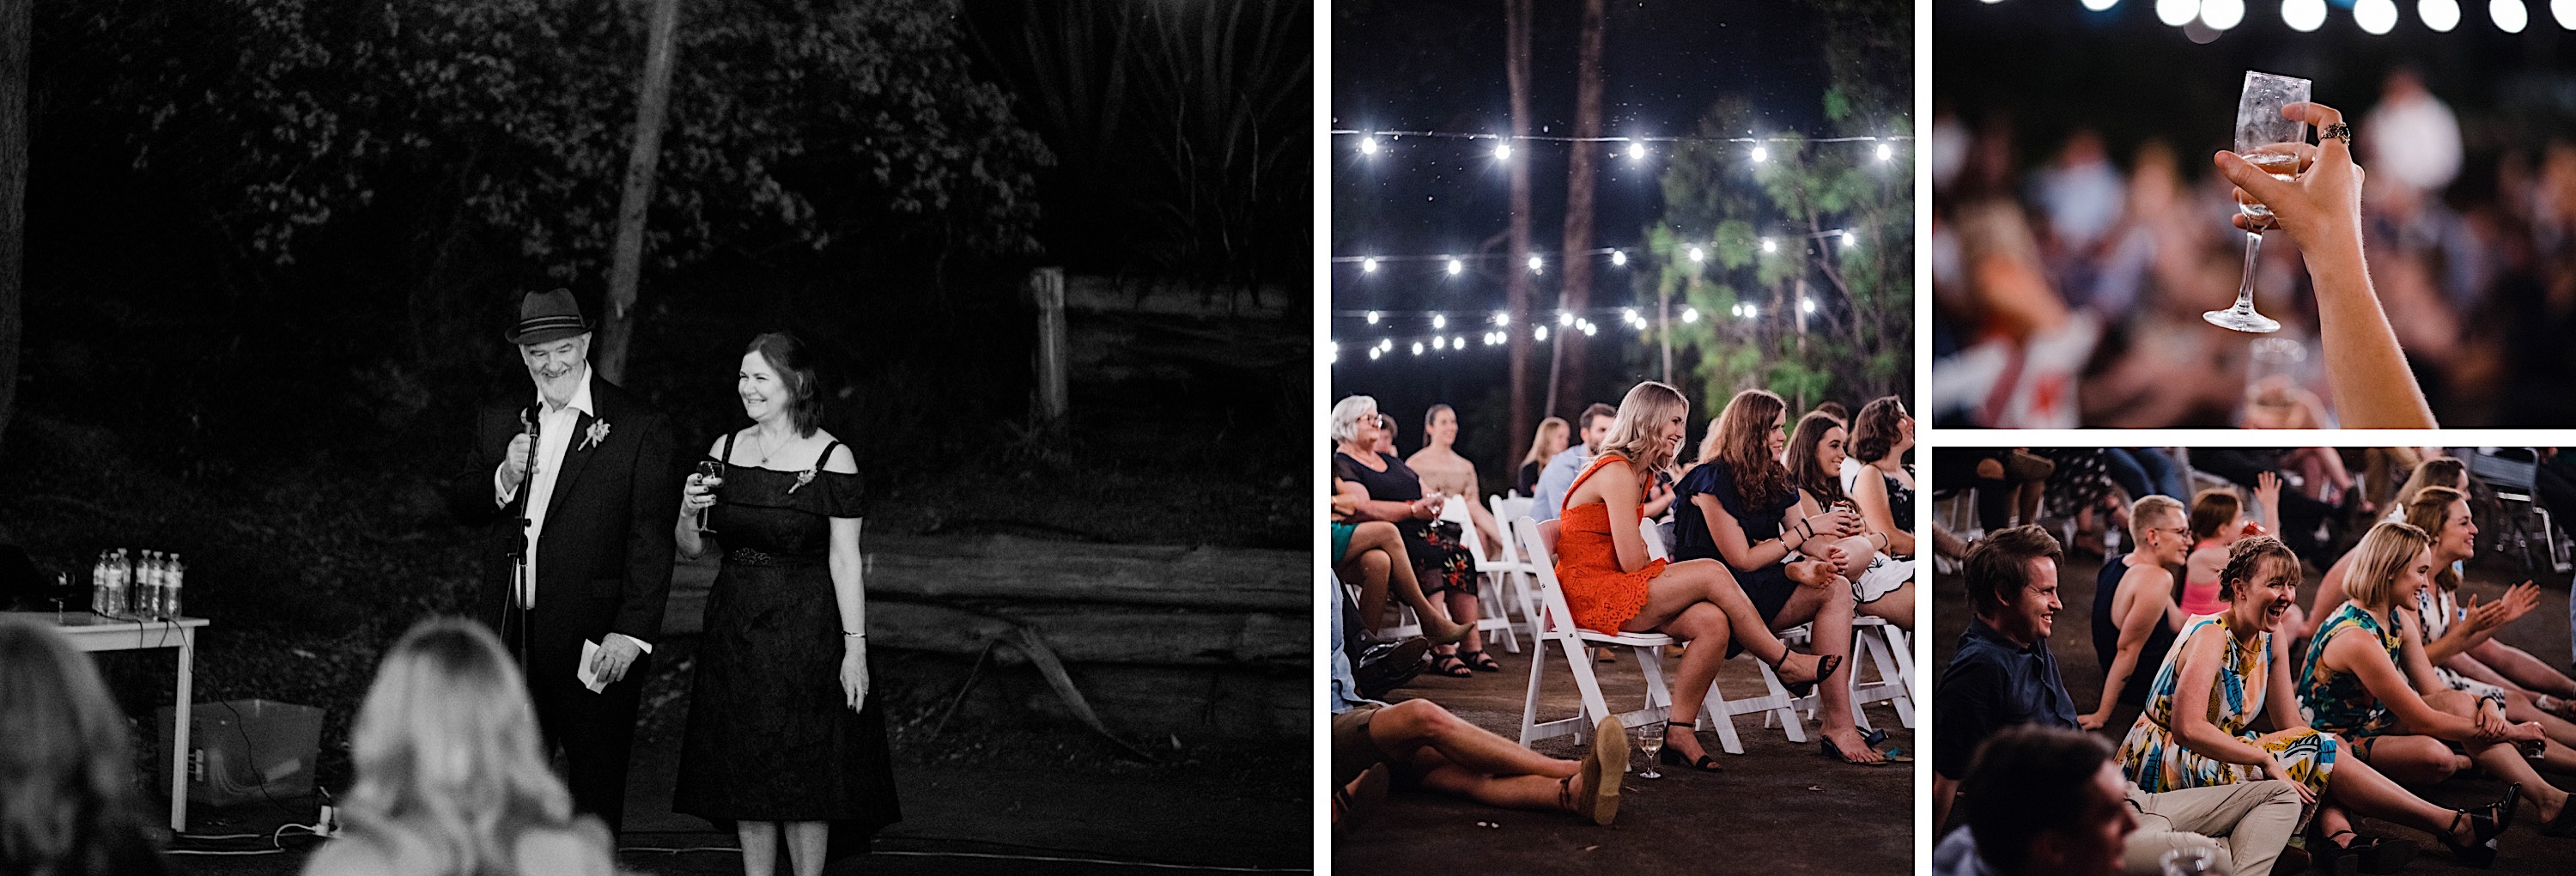 A few photos from the Groom's Parent's speech taken at the Donnelly River Tennis Courts.